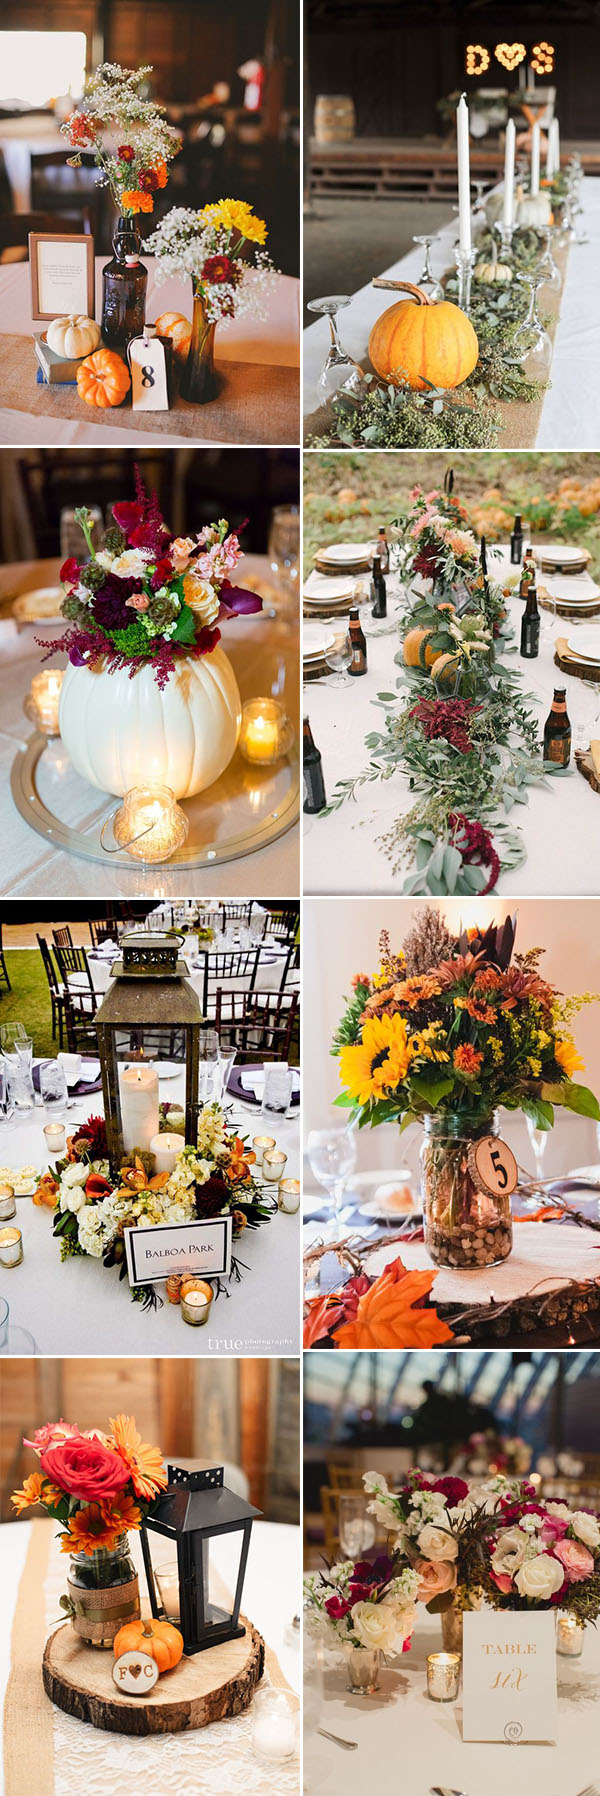 beautiful creative fall wedding centerpieces ideas